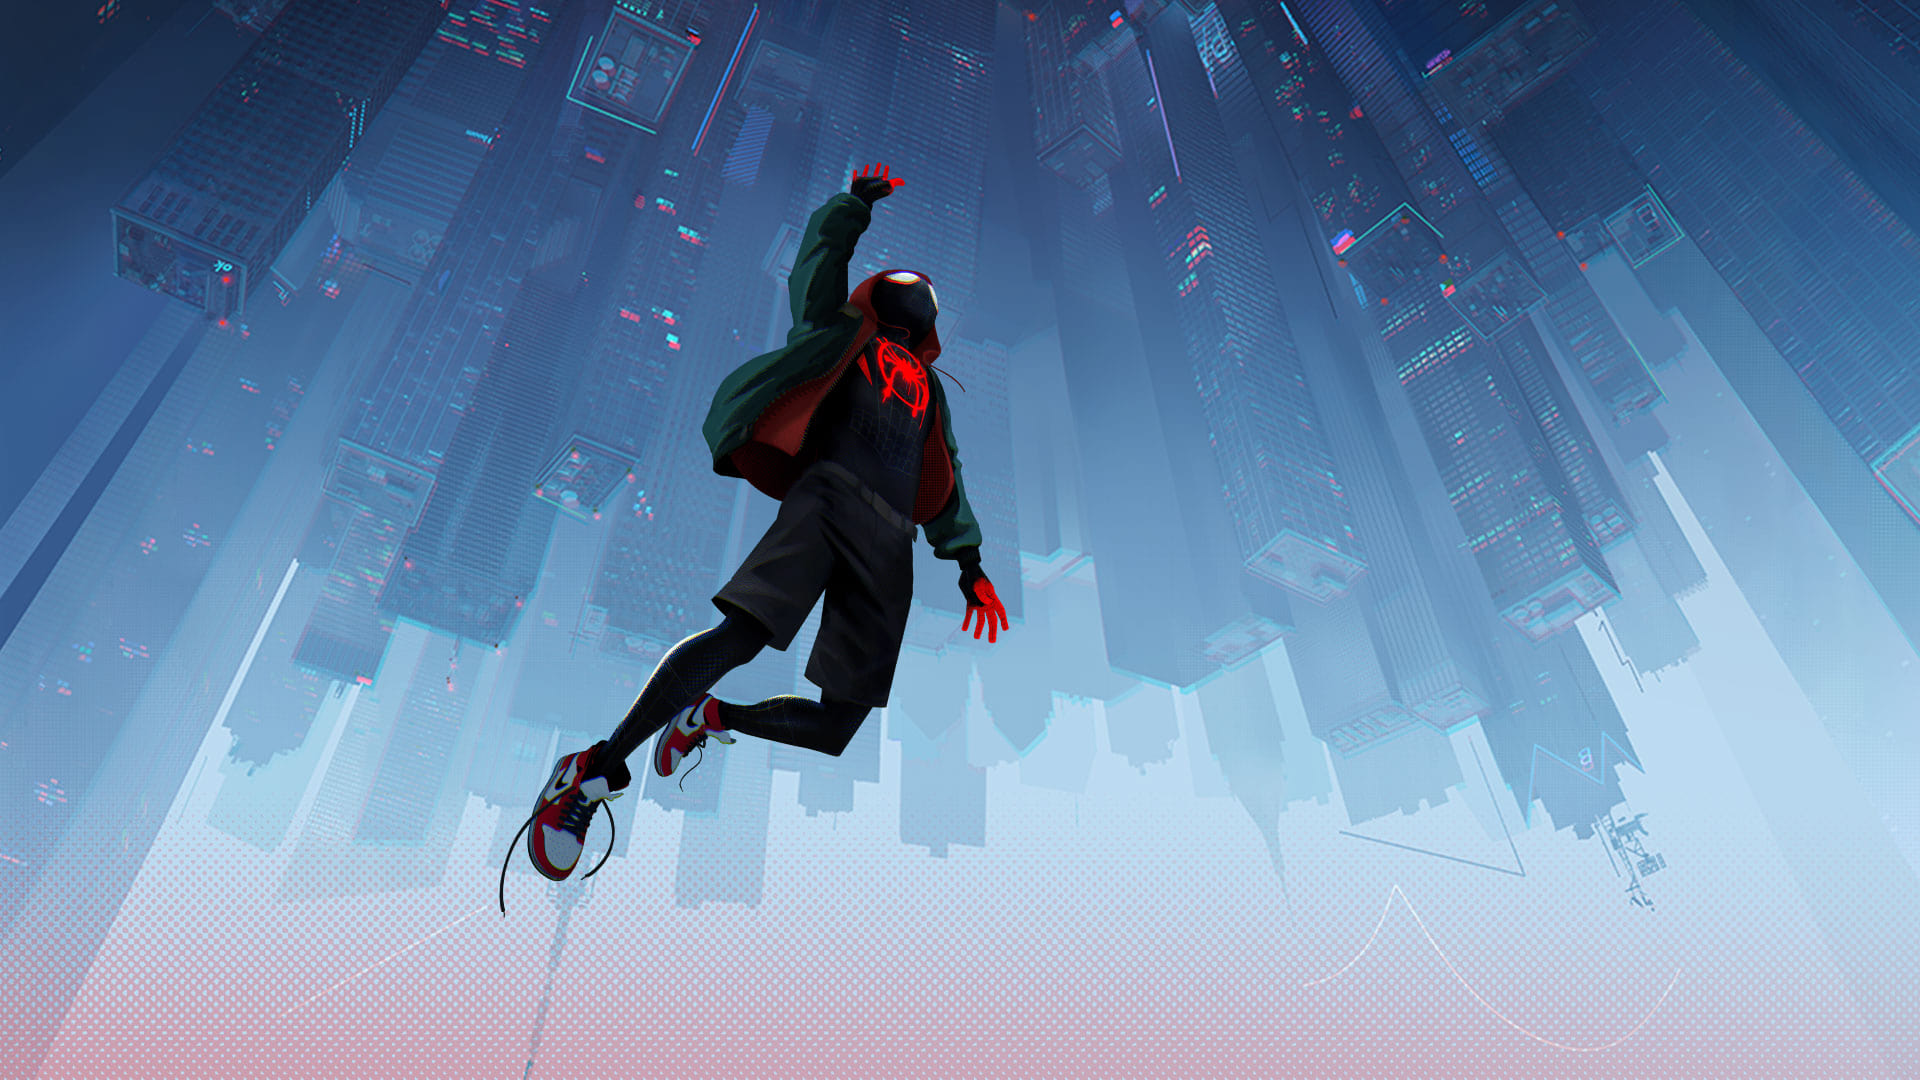 Spider-Man: Into The Spider-verse fue ganadora en los Golden Globe Awards 2019